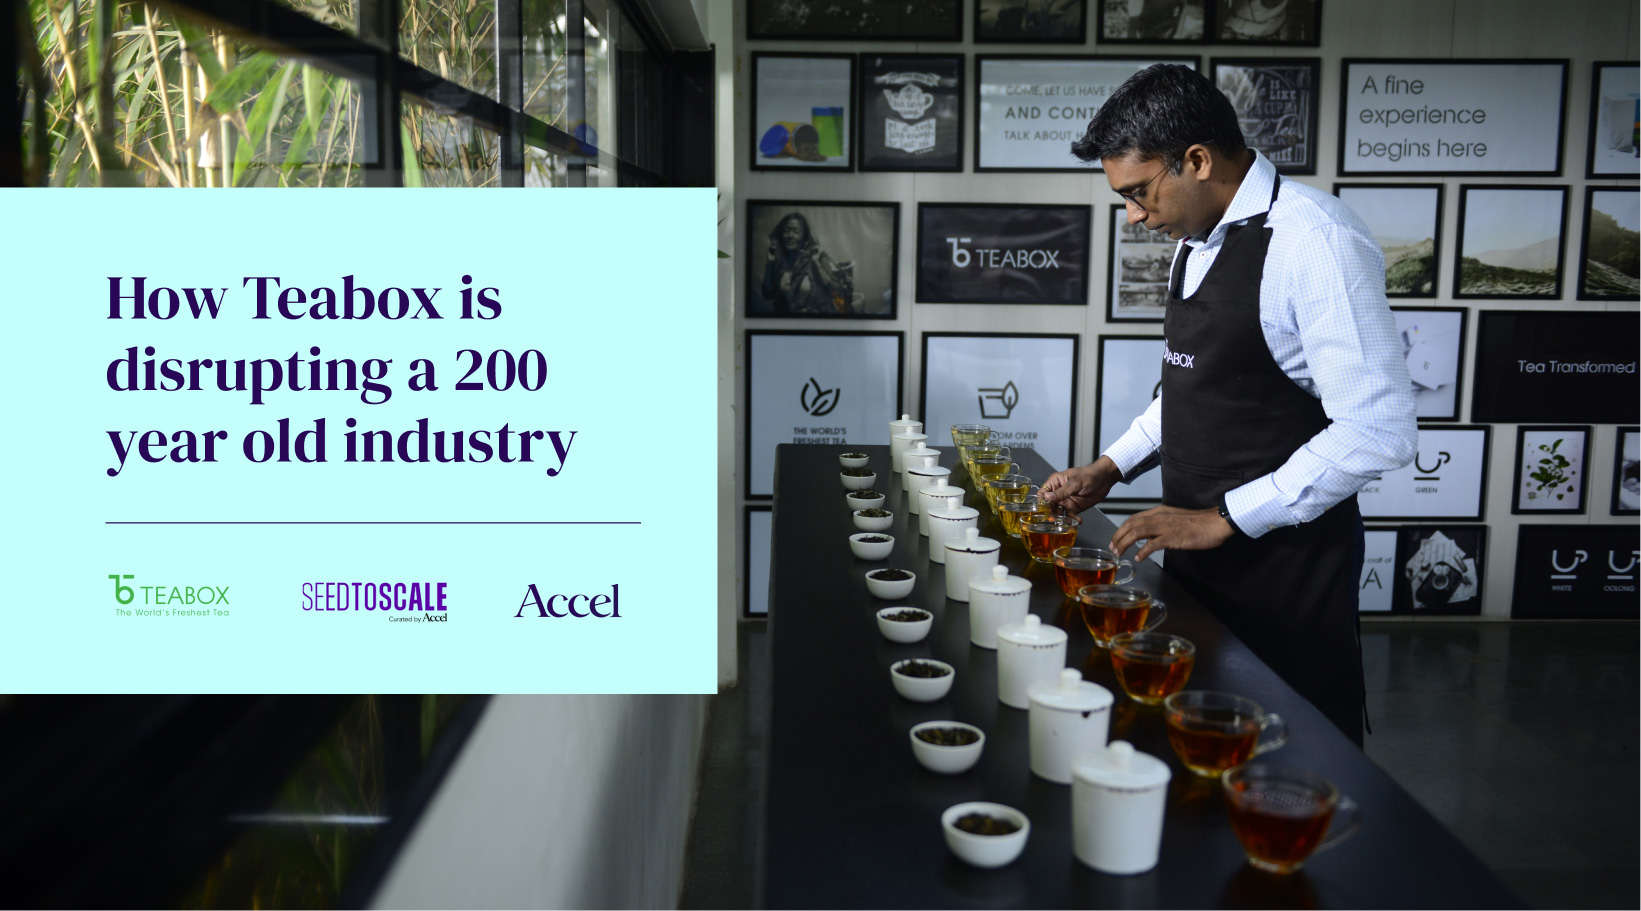 How Teabox is disrupting a 200 year old industry